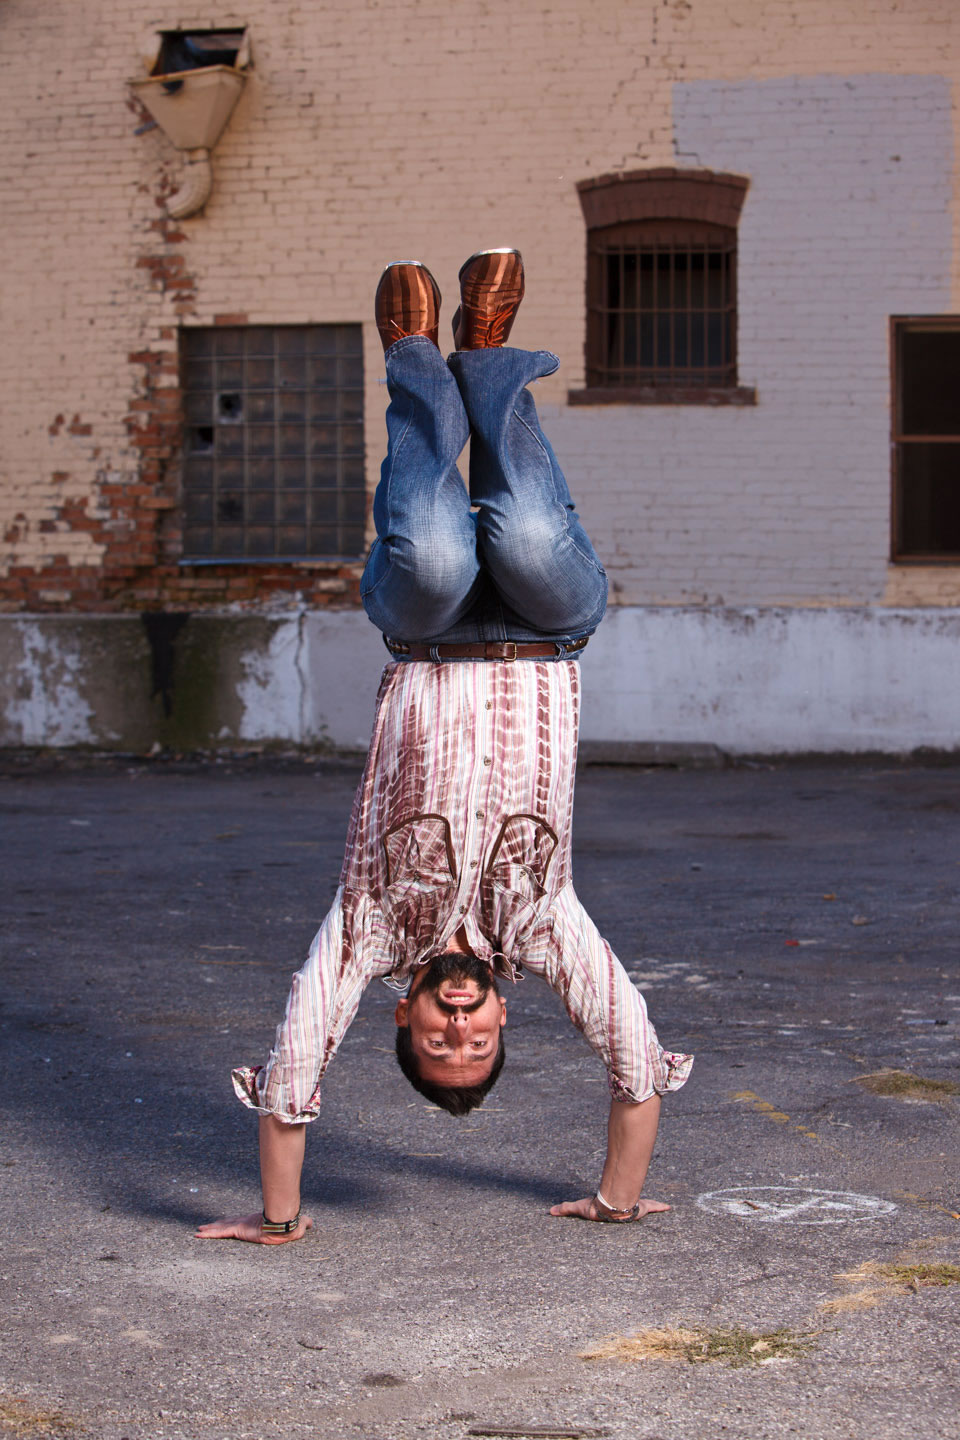 Aaron demonstrates capoeira with a handstand